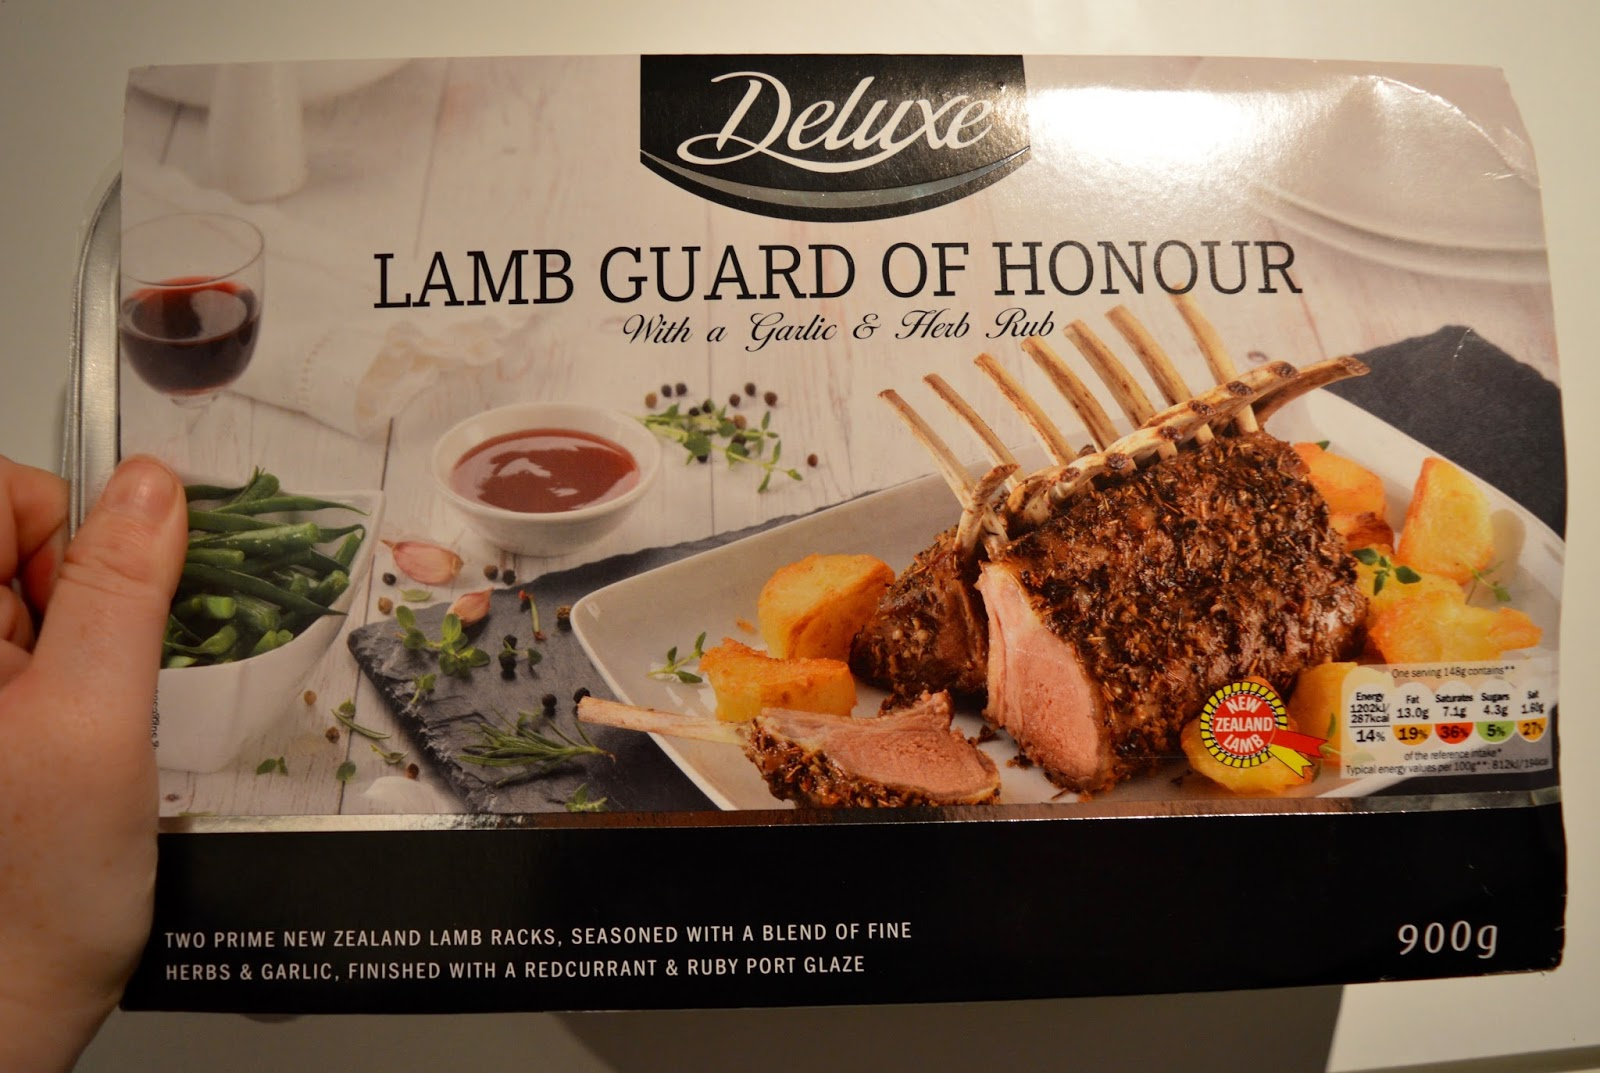 We review Christmas food at Lidl - Mains & Sides | What to Buy & What to Avoid - Deluxe  Lamb Guard of Honour